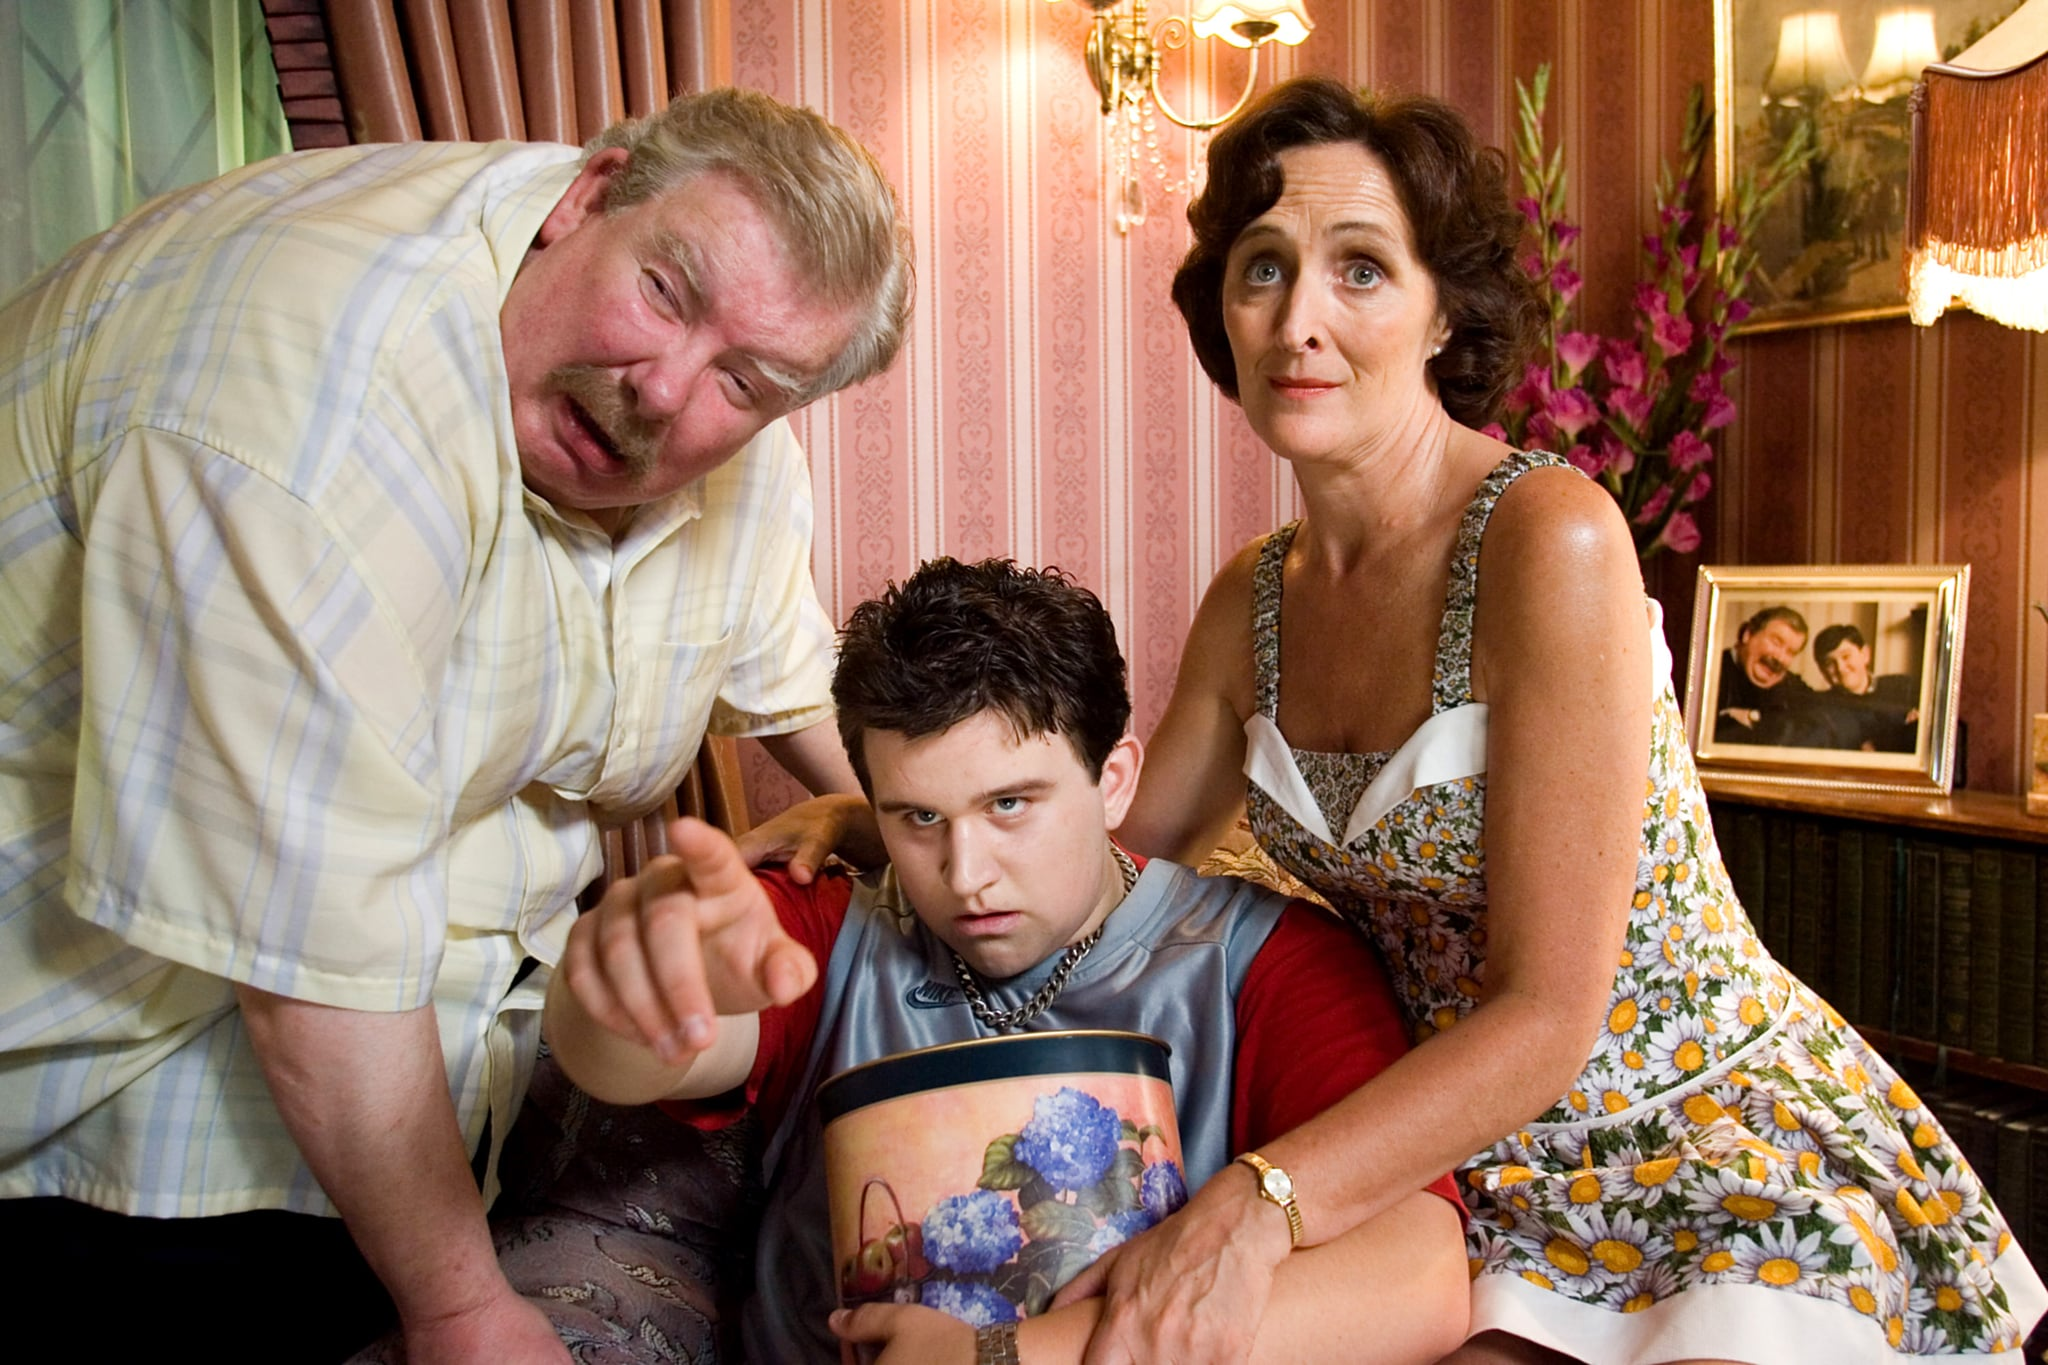 HARRY POTTER AND THE ORDER OF THE PHOENIX, from left: Richard Griffiths, Harry Melling, Fiona Shaw, 2007. Warner Bros./courtesy Everett Collection